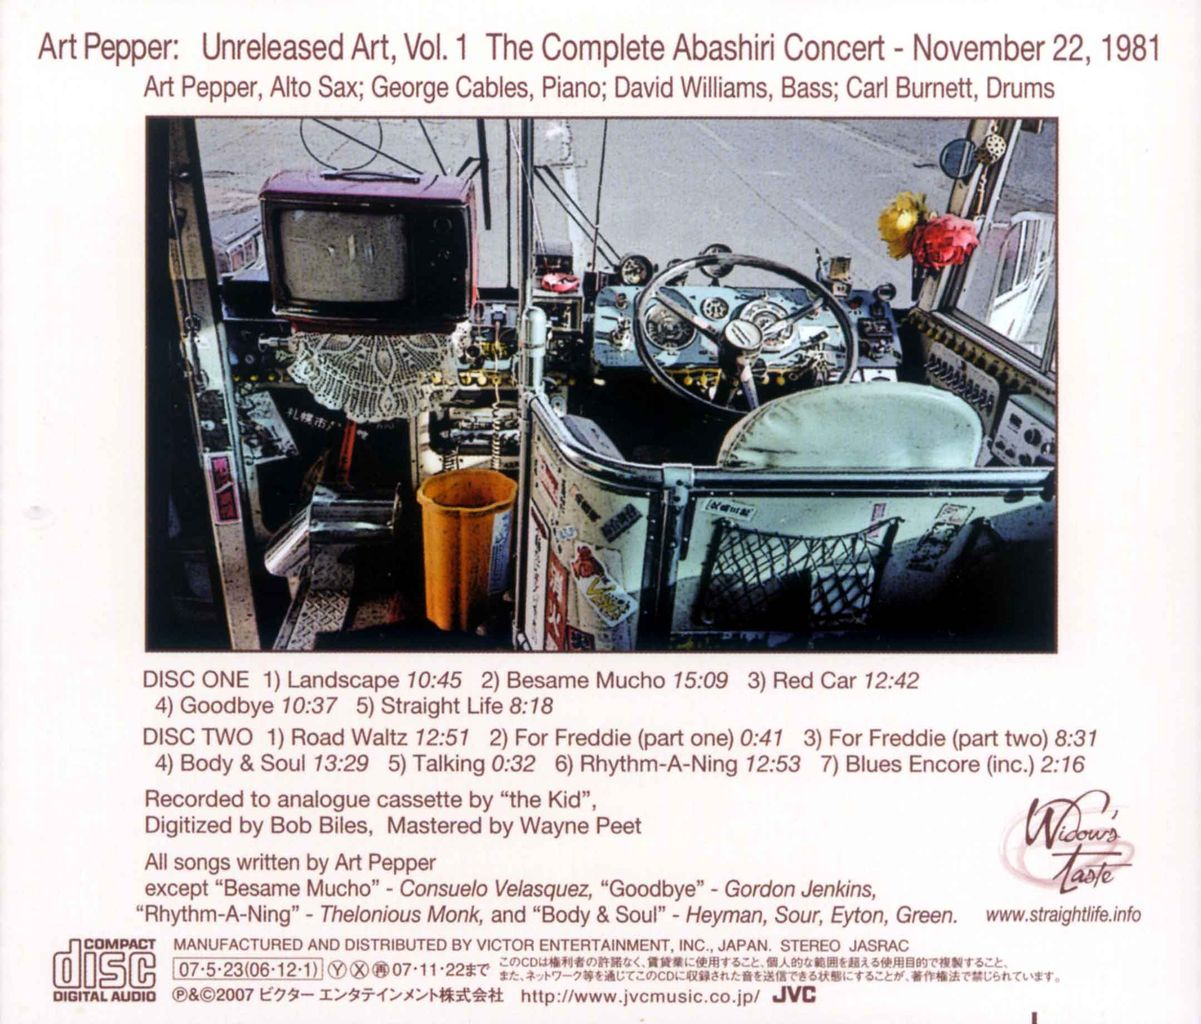 UNRELEASED ART, VOL.1 THE COMPLETE ABASHIRI CONCERT 1981-2